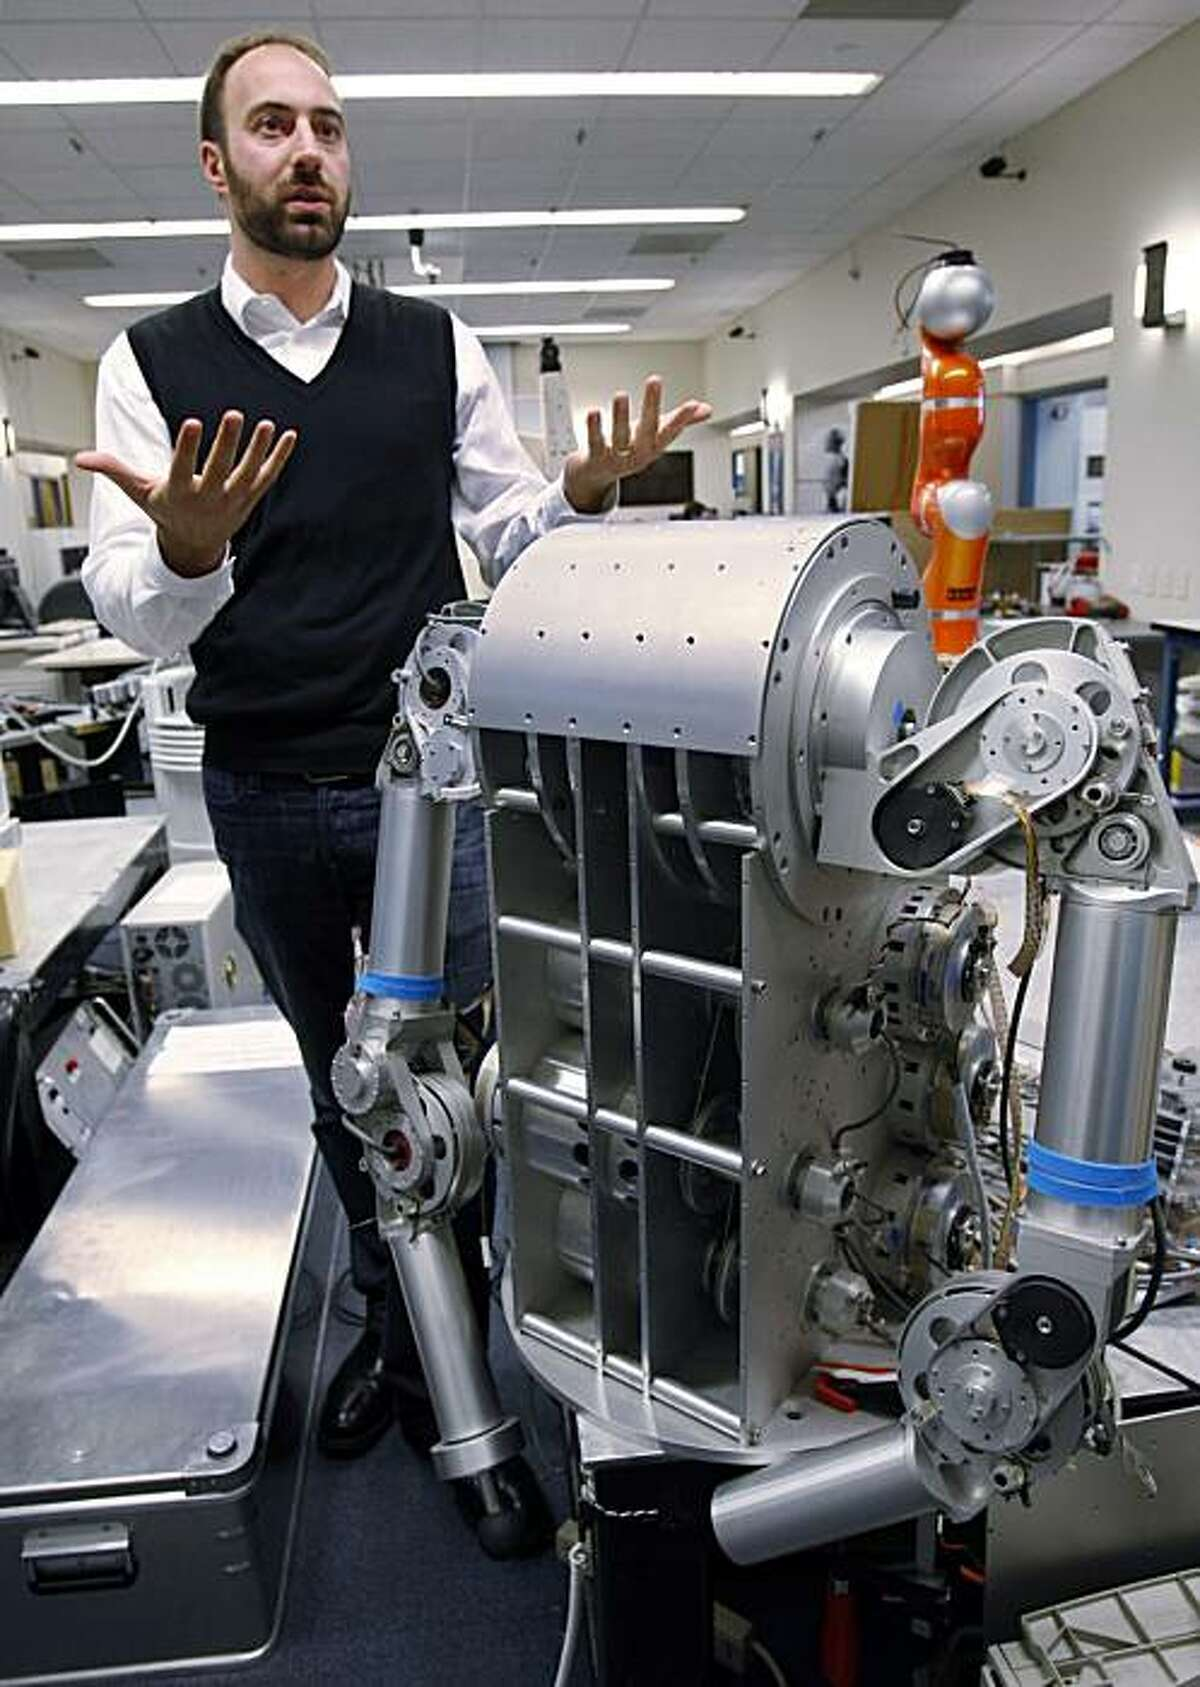 Ryan Calo of the Stanford Center for Internet and Society at the Stanford Law School stands next to a robot that is being built for medical applications at Stanford University's Artificial Intelligence Laboratory in Palo Alto.